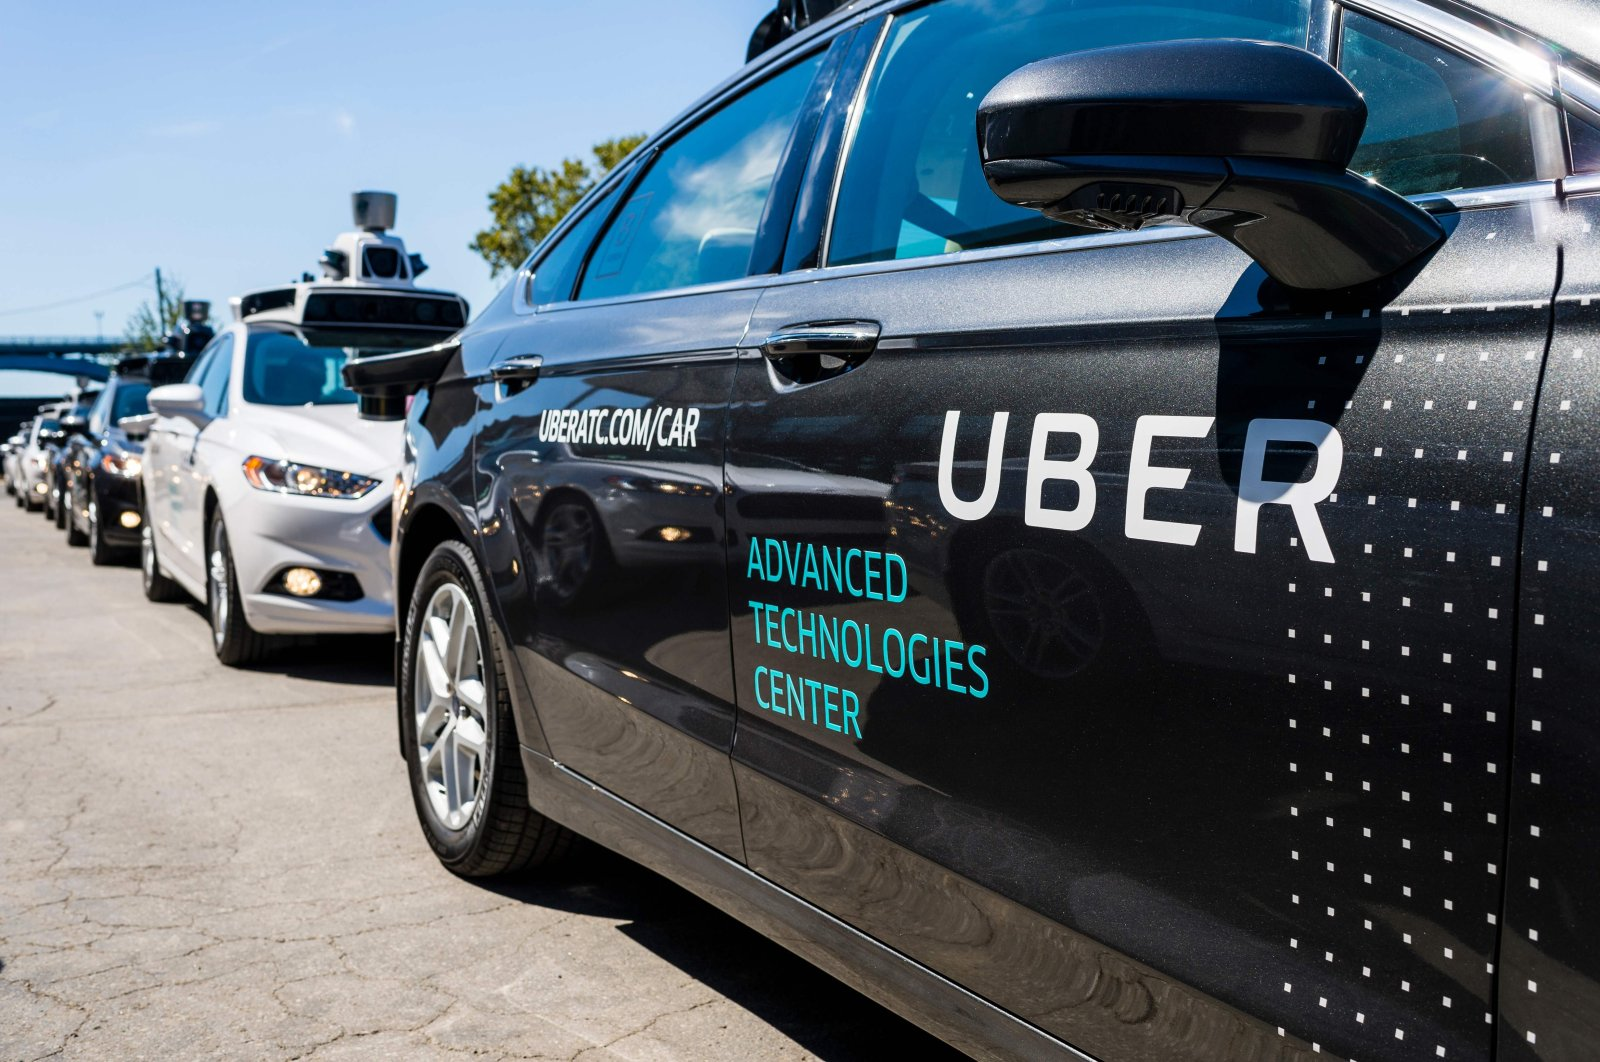 Pilot models of the Uber self-driving car are displayed at the Uber advanced technologies center in Pennsylvania, U.S., Sept. 13, 2016. (AFP file photo)